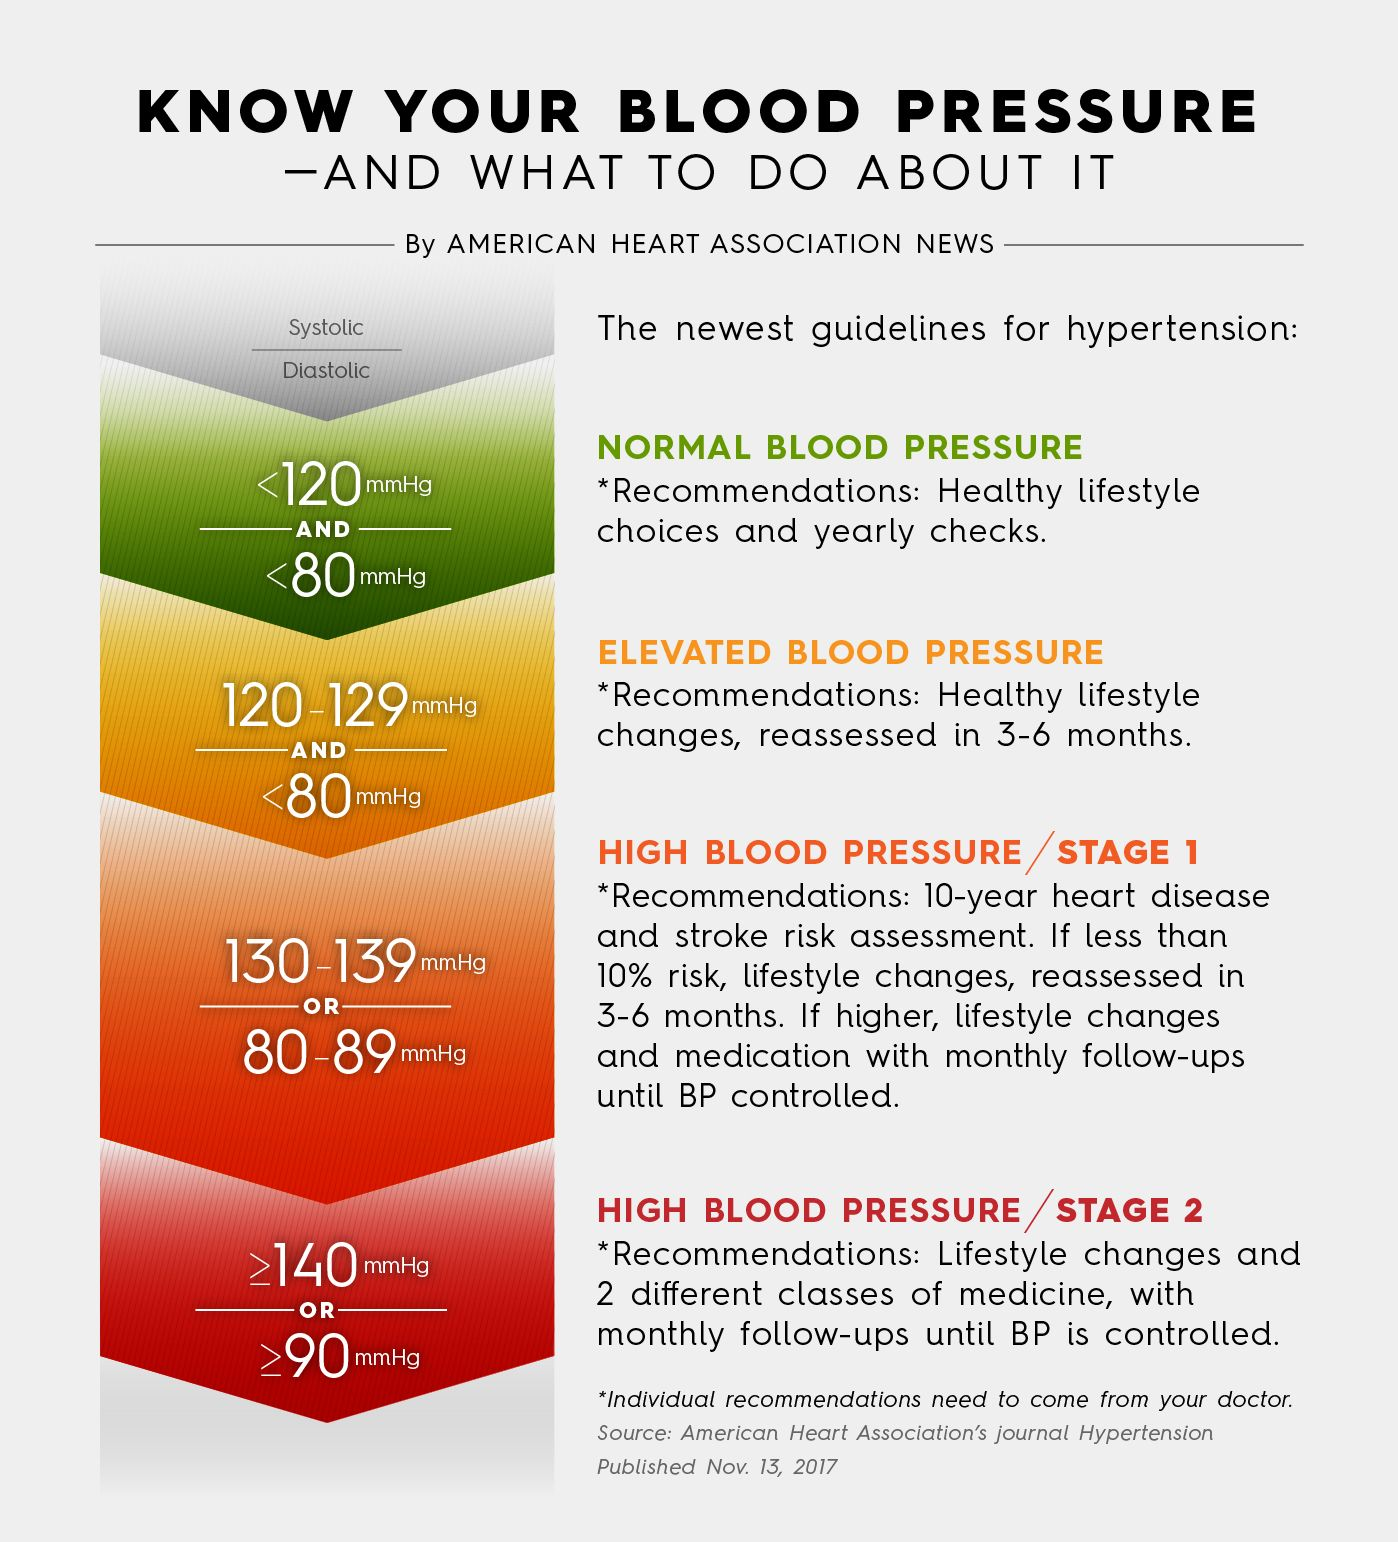 Nearly Half Of US Adults May Have High Blood Pressure Under New AHA Guidelines